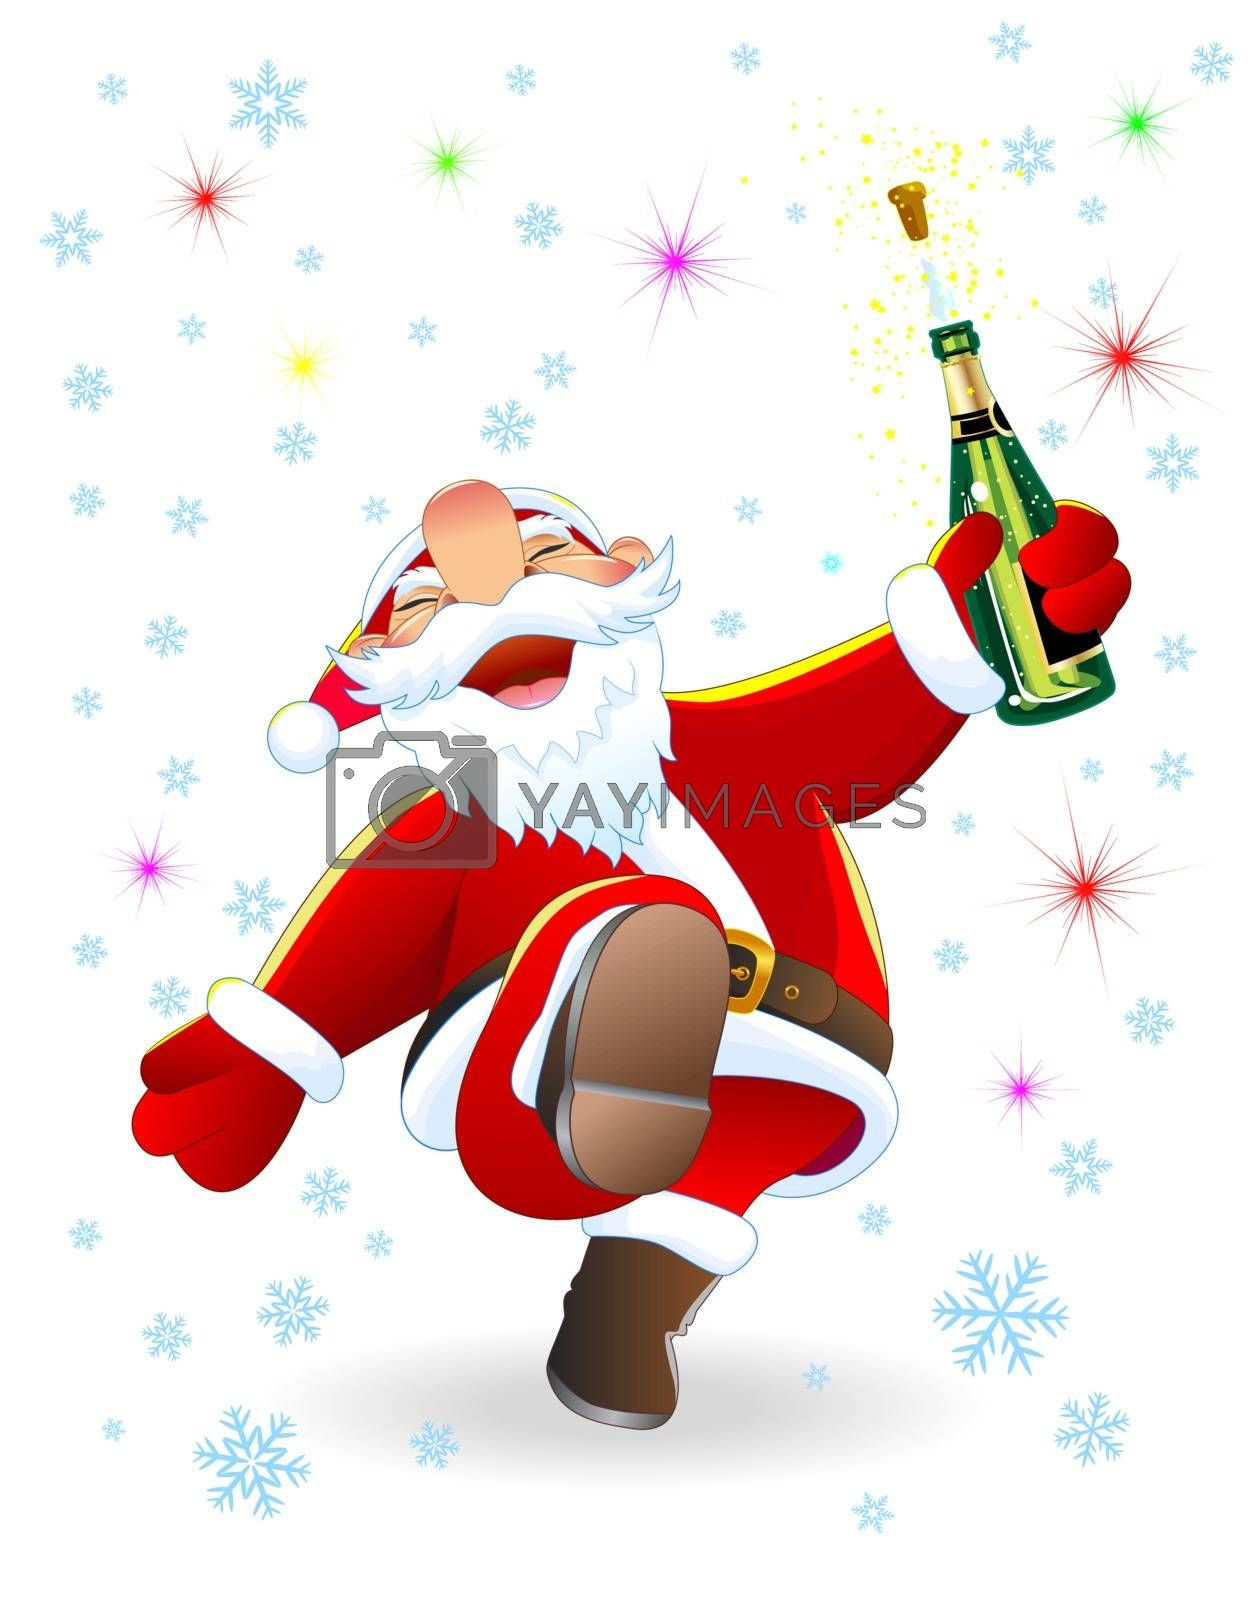 Joyful Santa with a bottle of champagne on the background of snowflakes and stars.